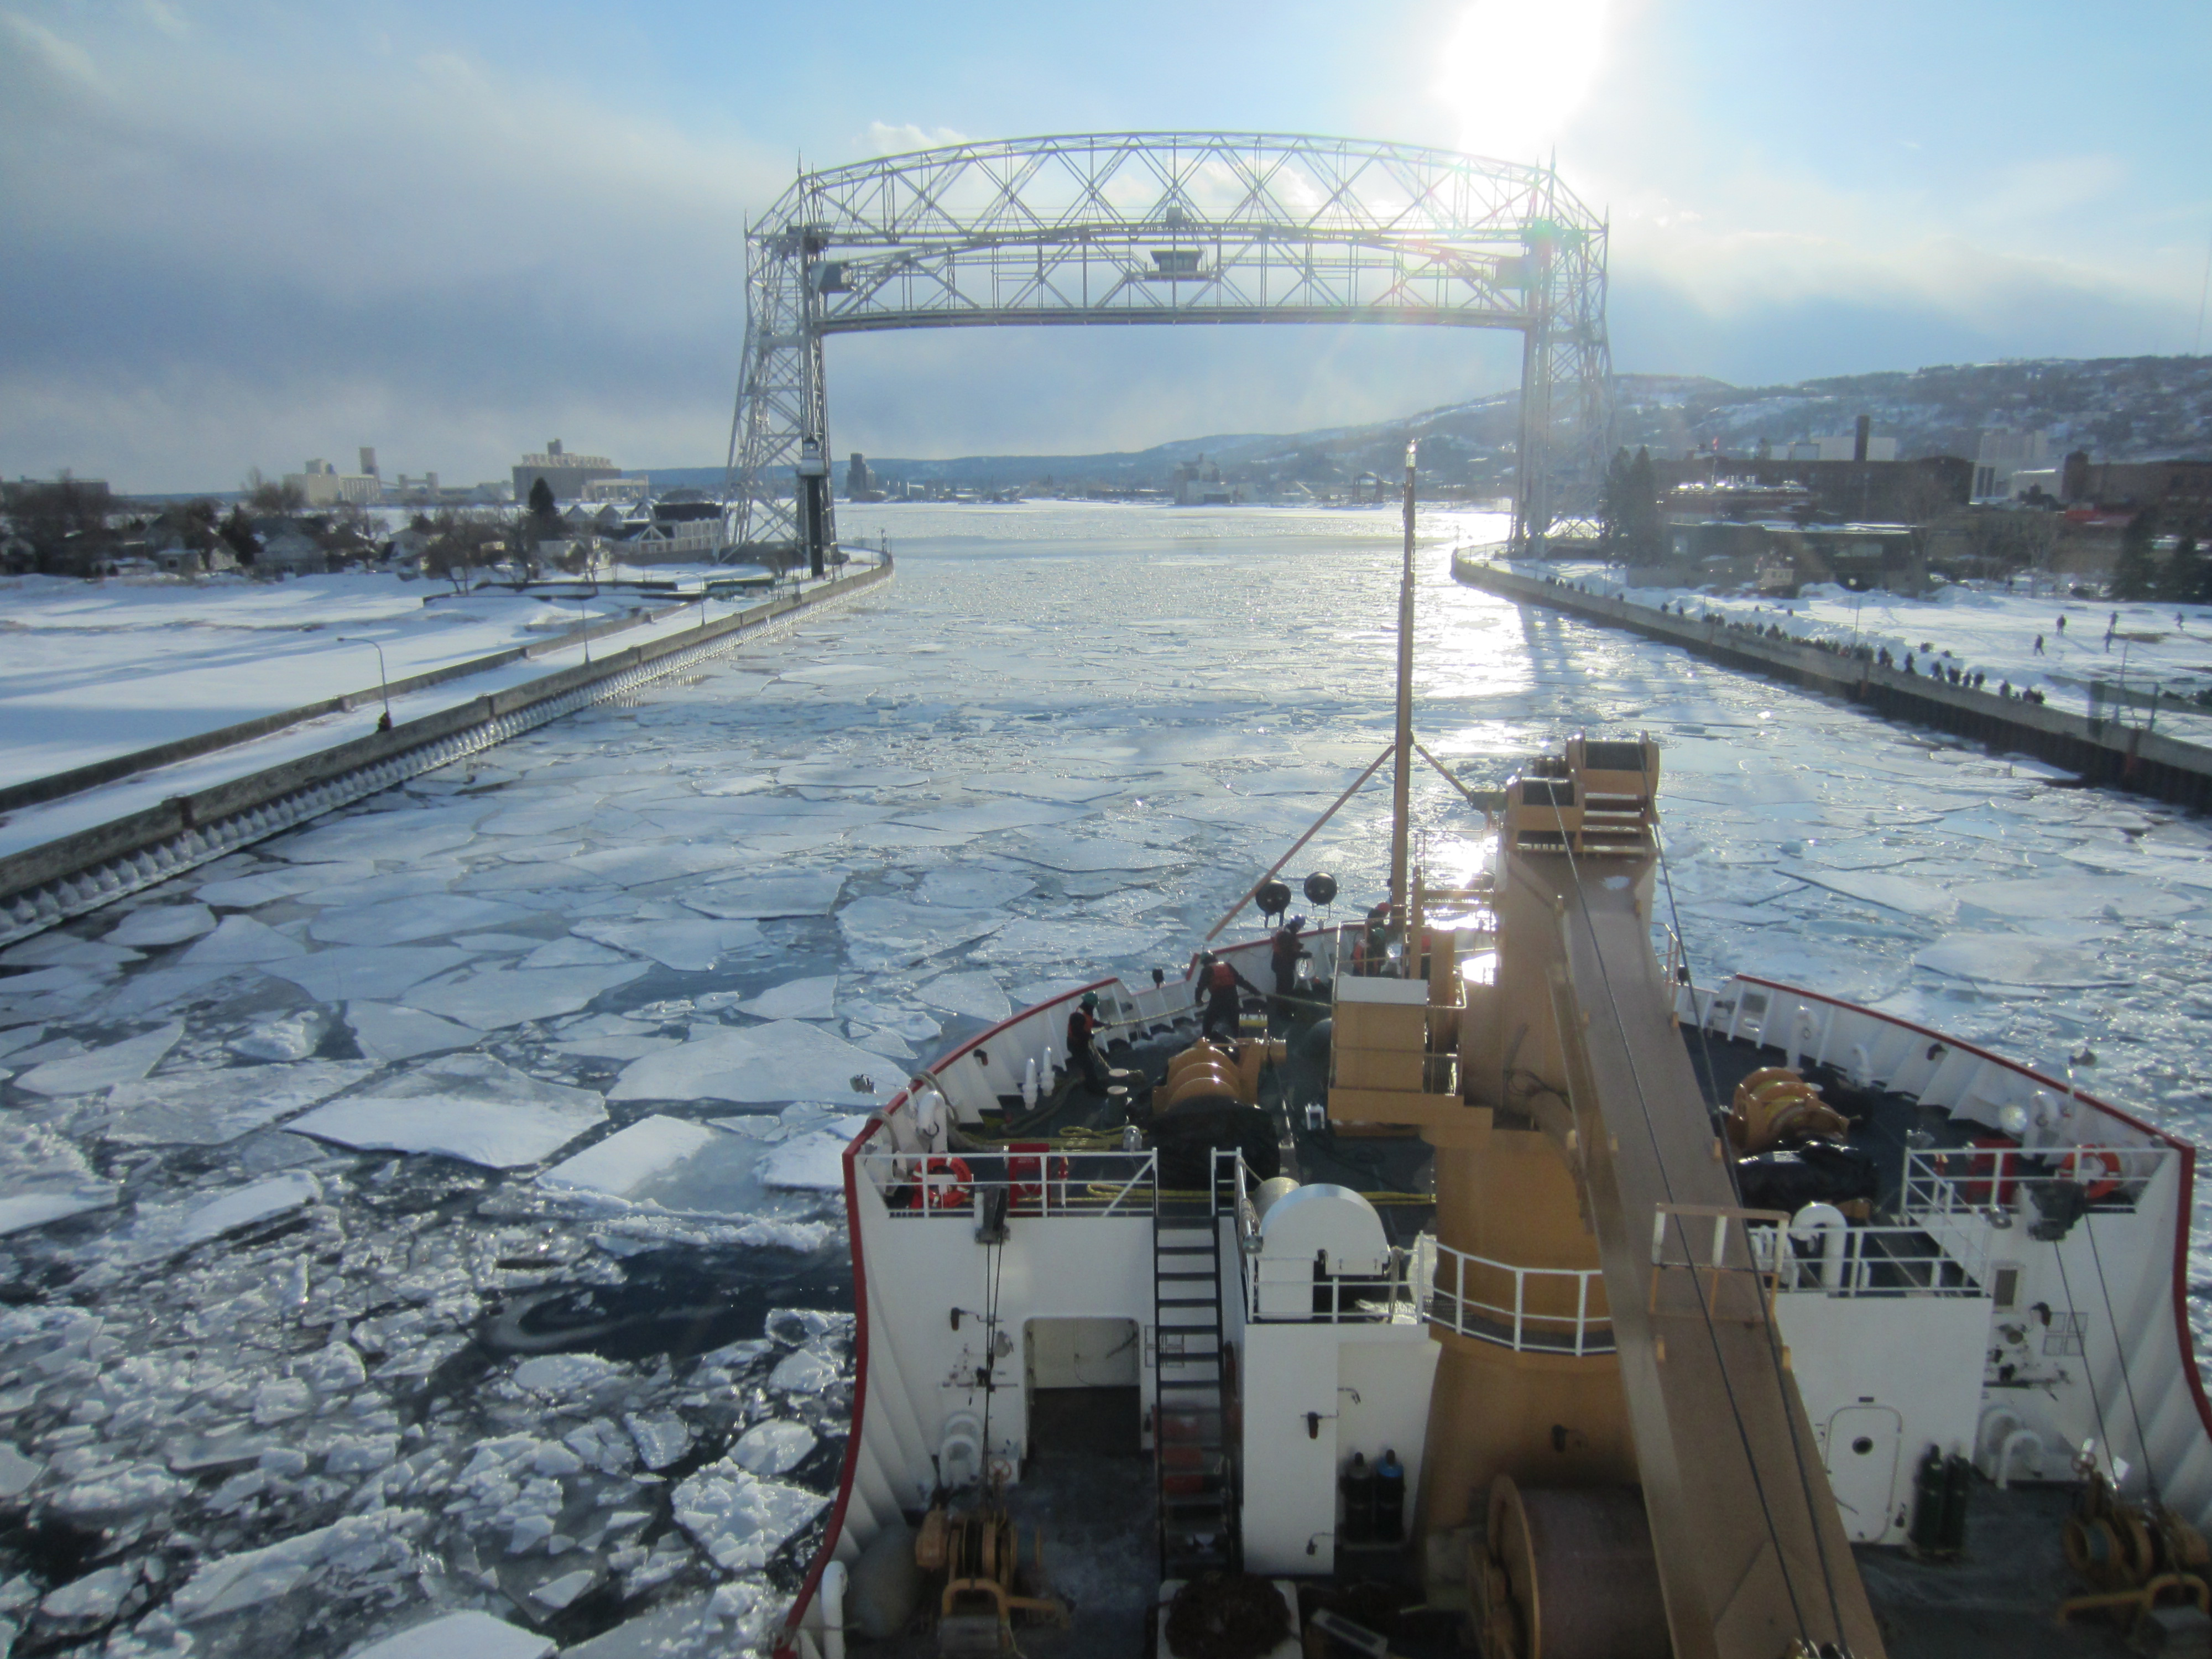 The USCGC Mackinaw arrives in Duluth via Lake Superior. March 24, 2014